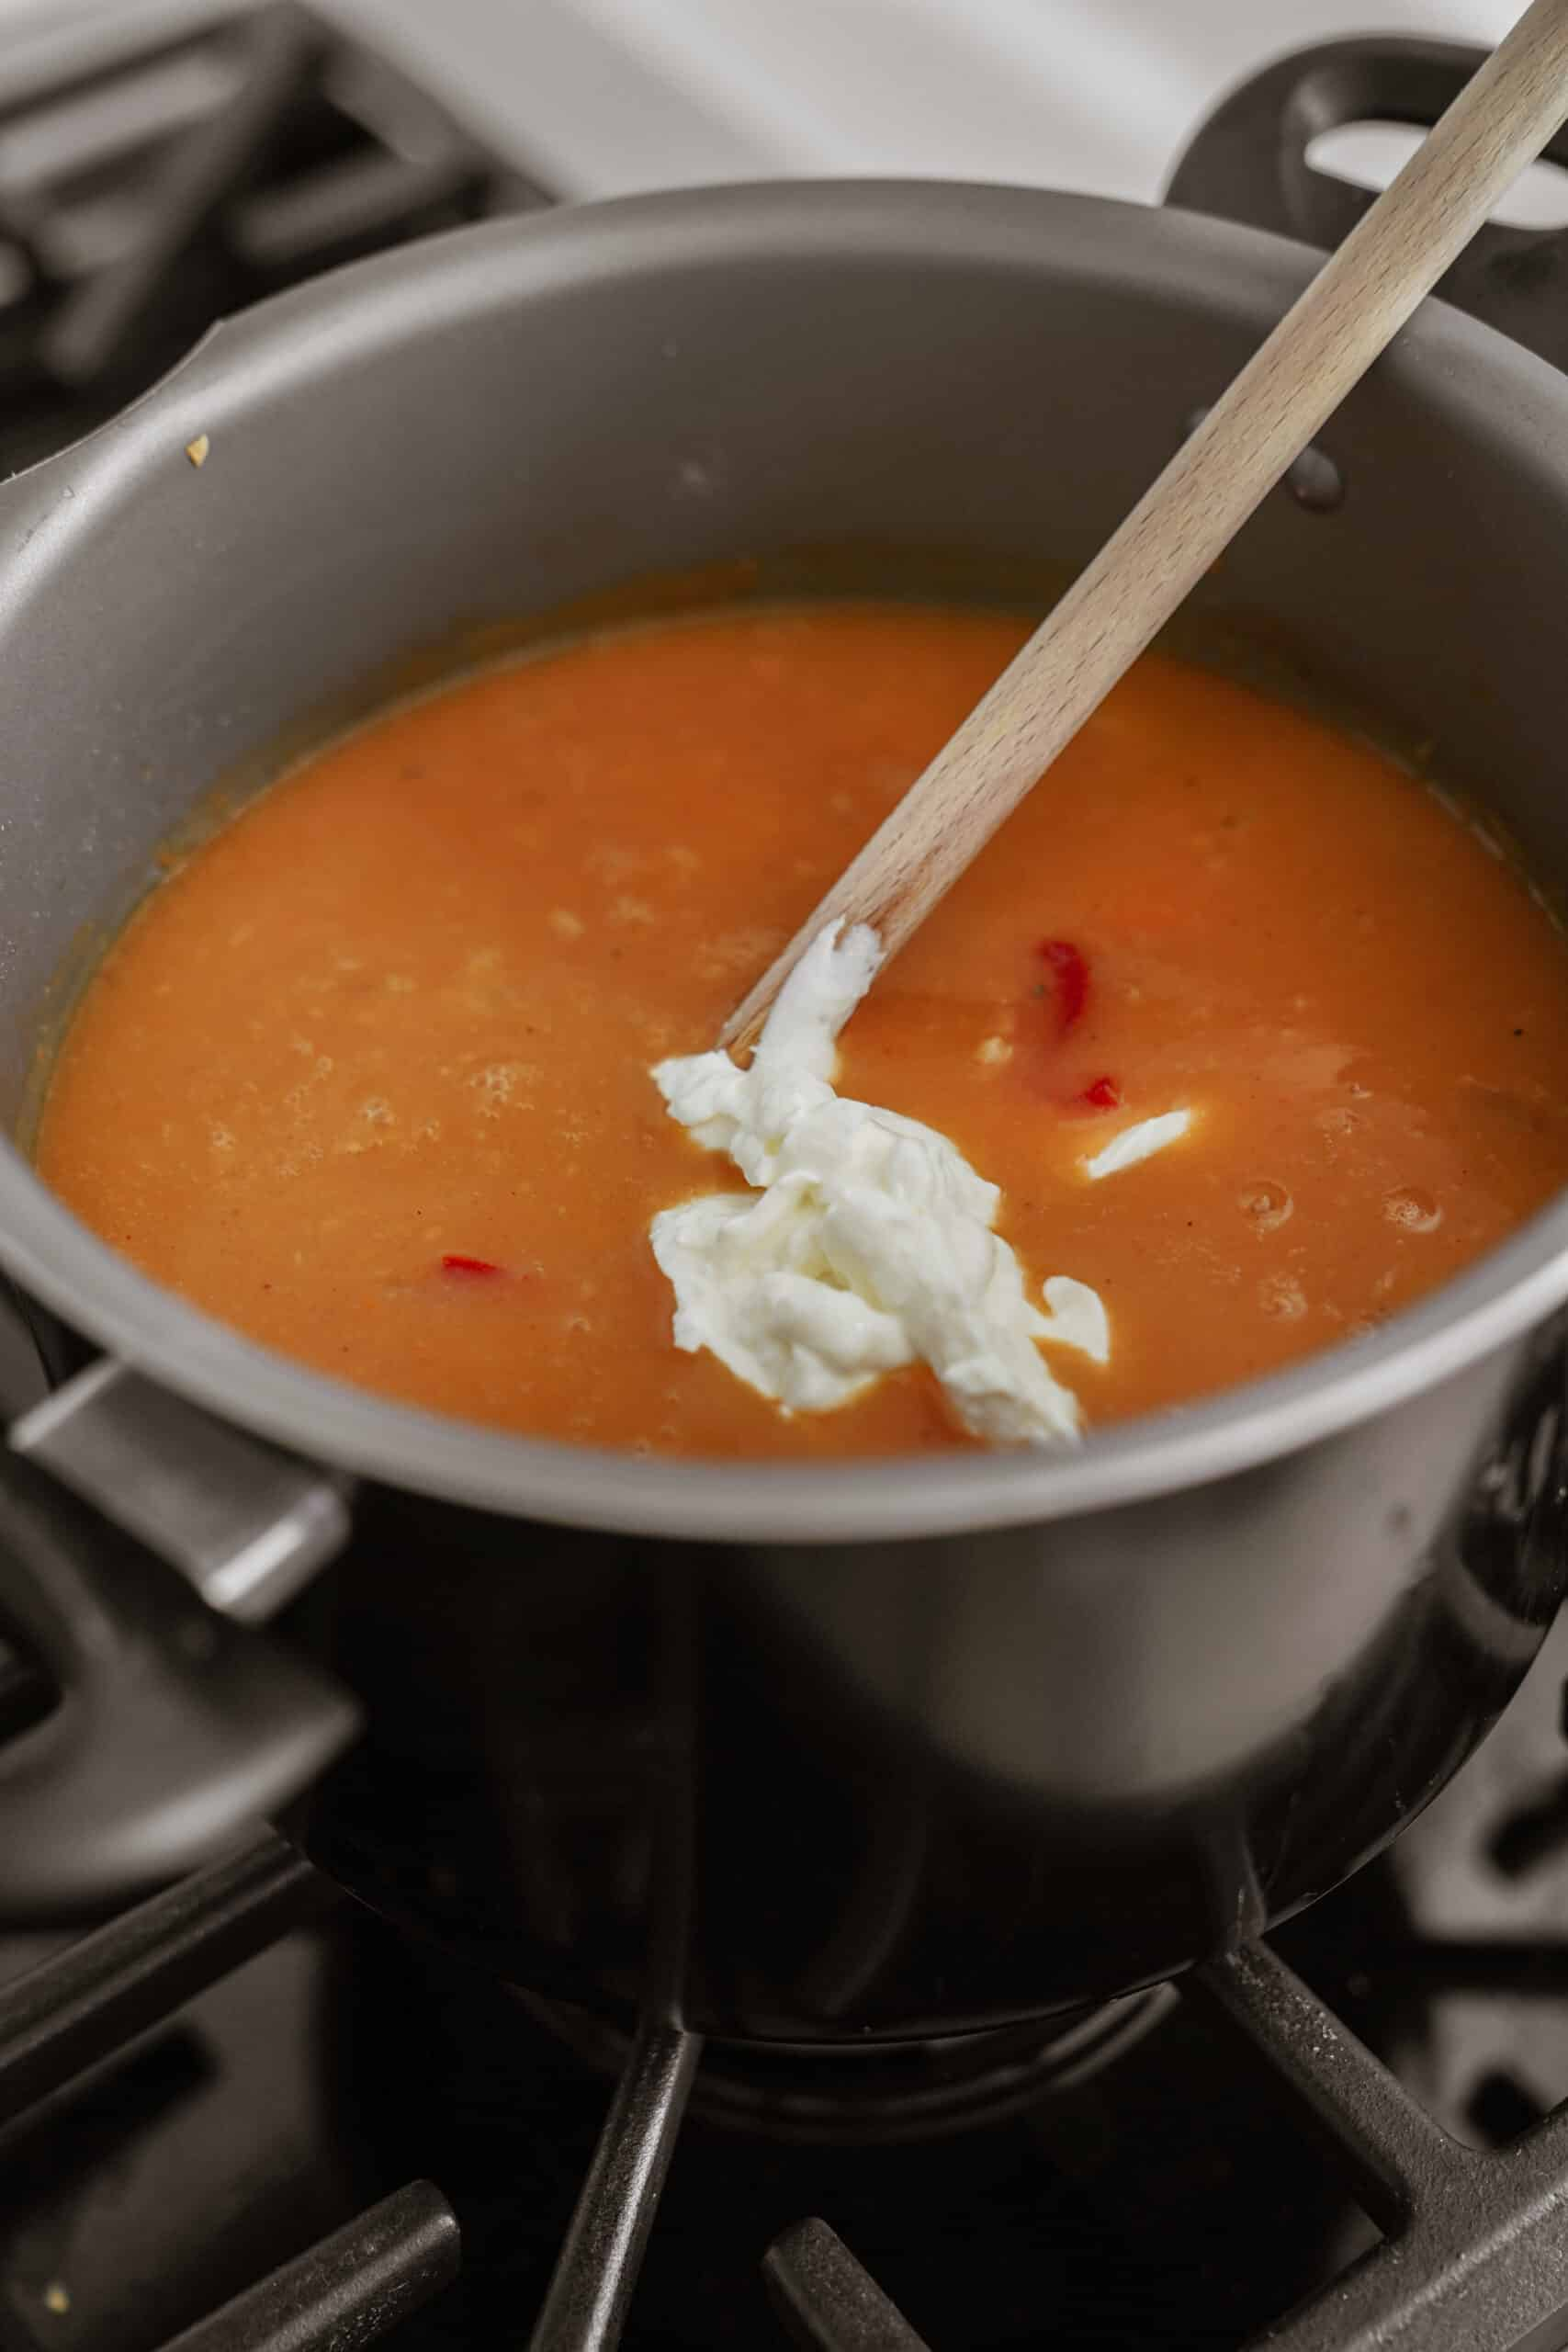 Cream being added into soup pot